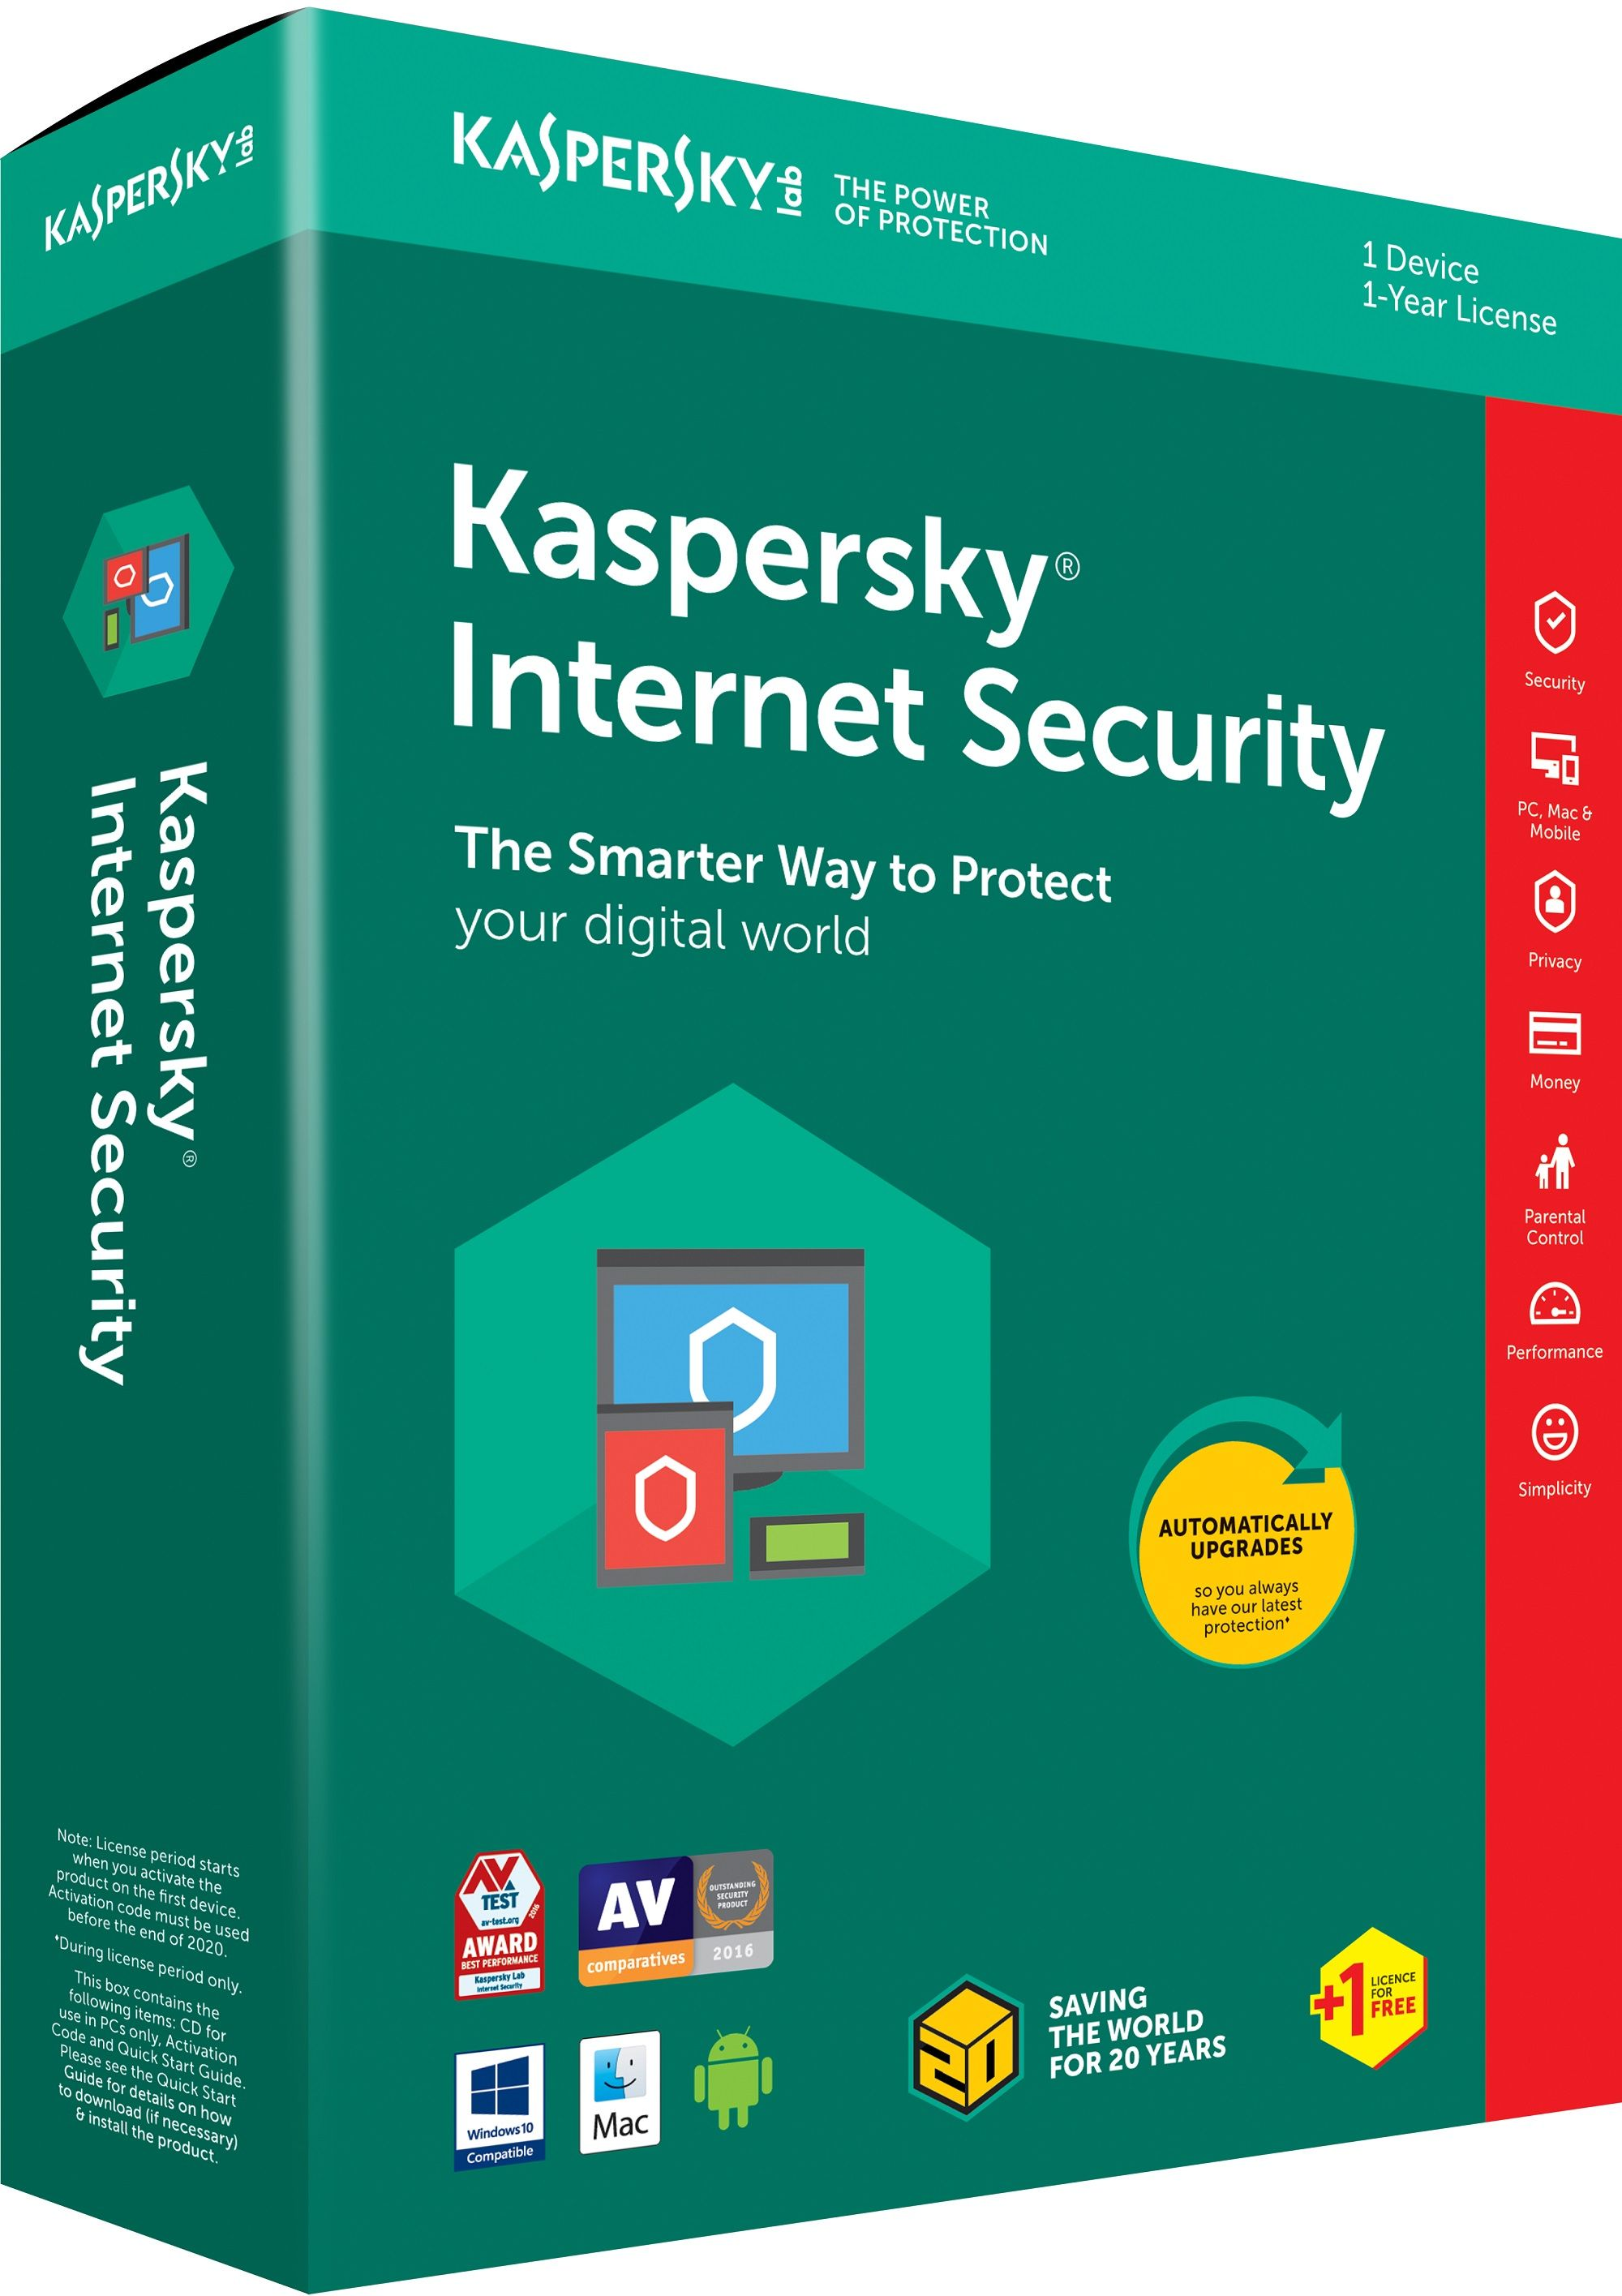 https://www.raymond.cc/blog/activate-free-kaspersky-antivirus-2013-rog-1-year-license/